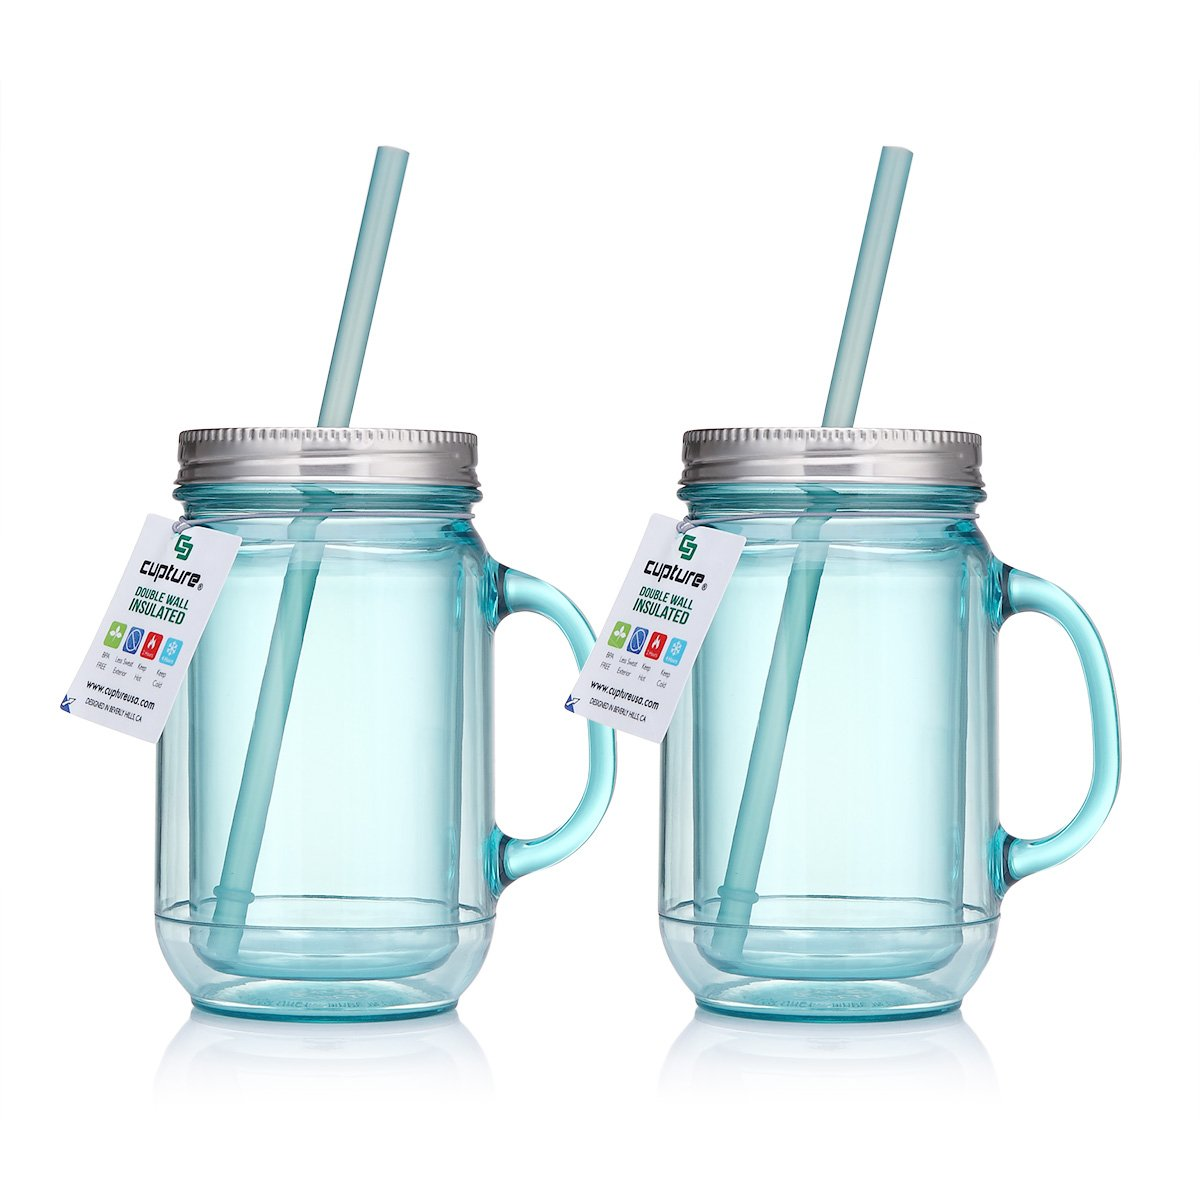 Cupture 2 Vintage Blue Mason Jar Tumbler Mug With Stainless Steel Lid And Straw   20 Oz by Cupture